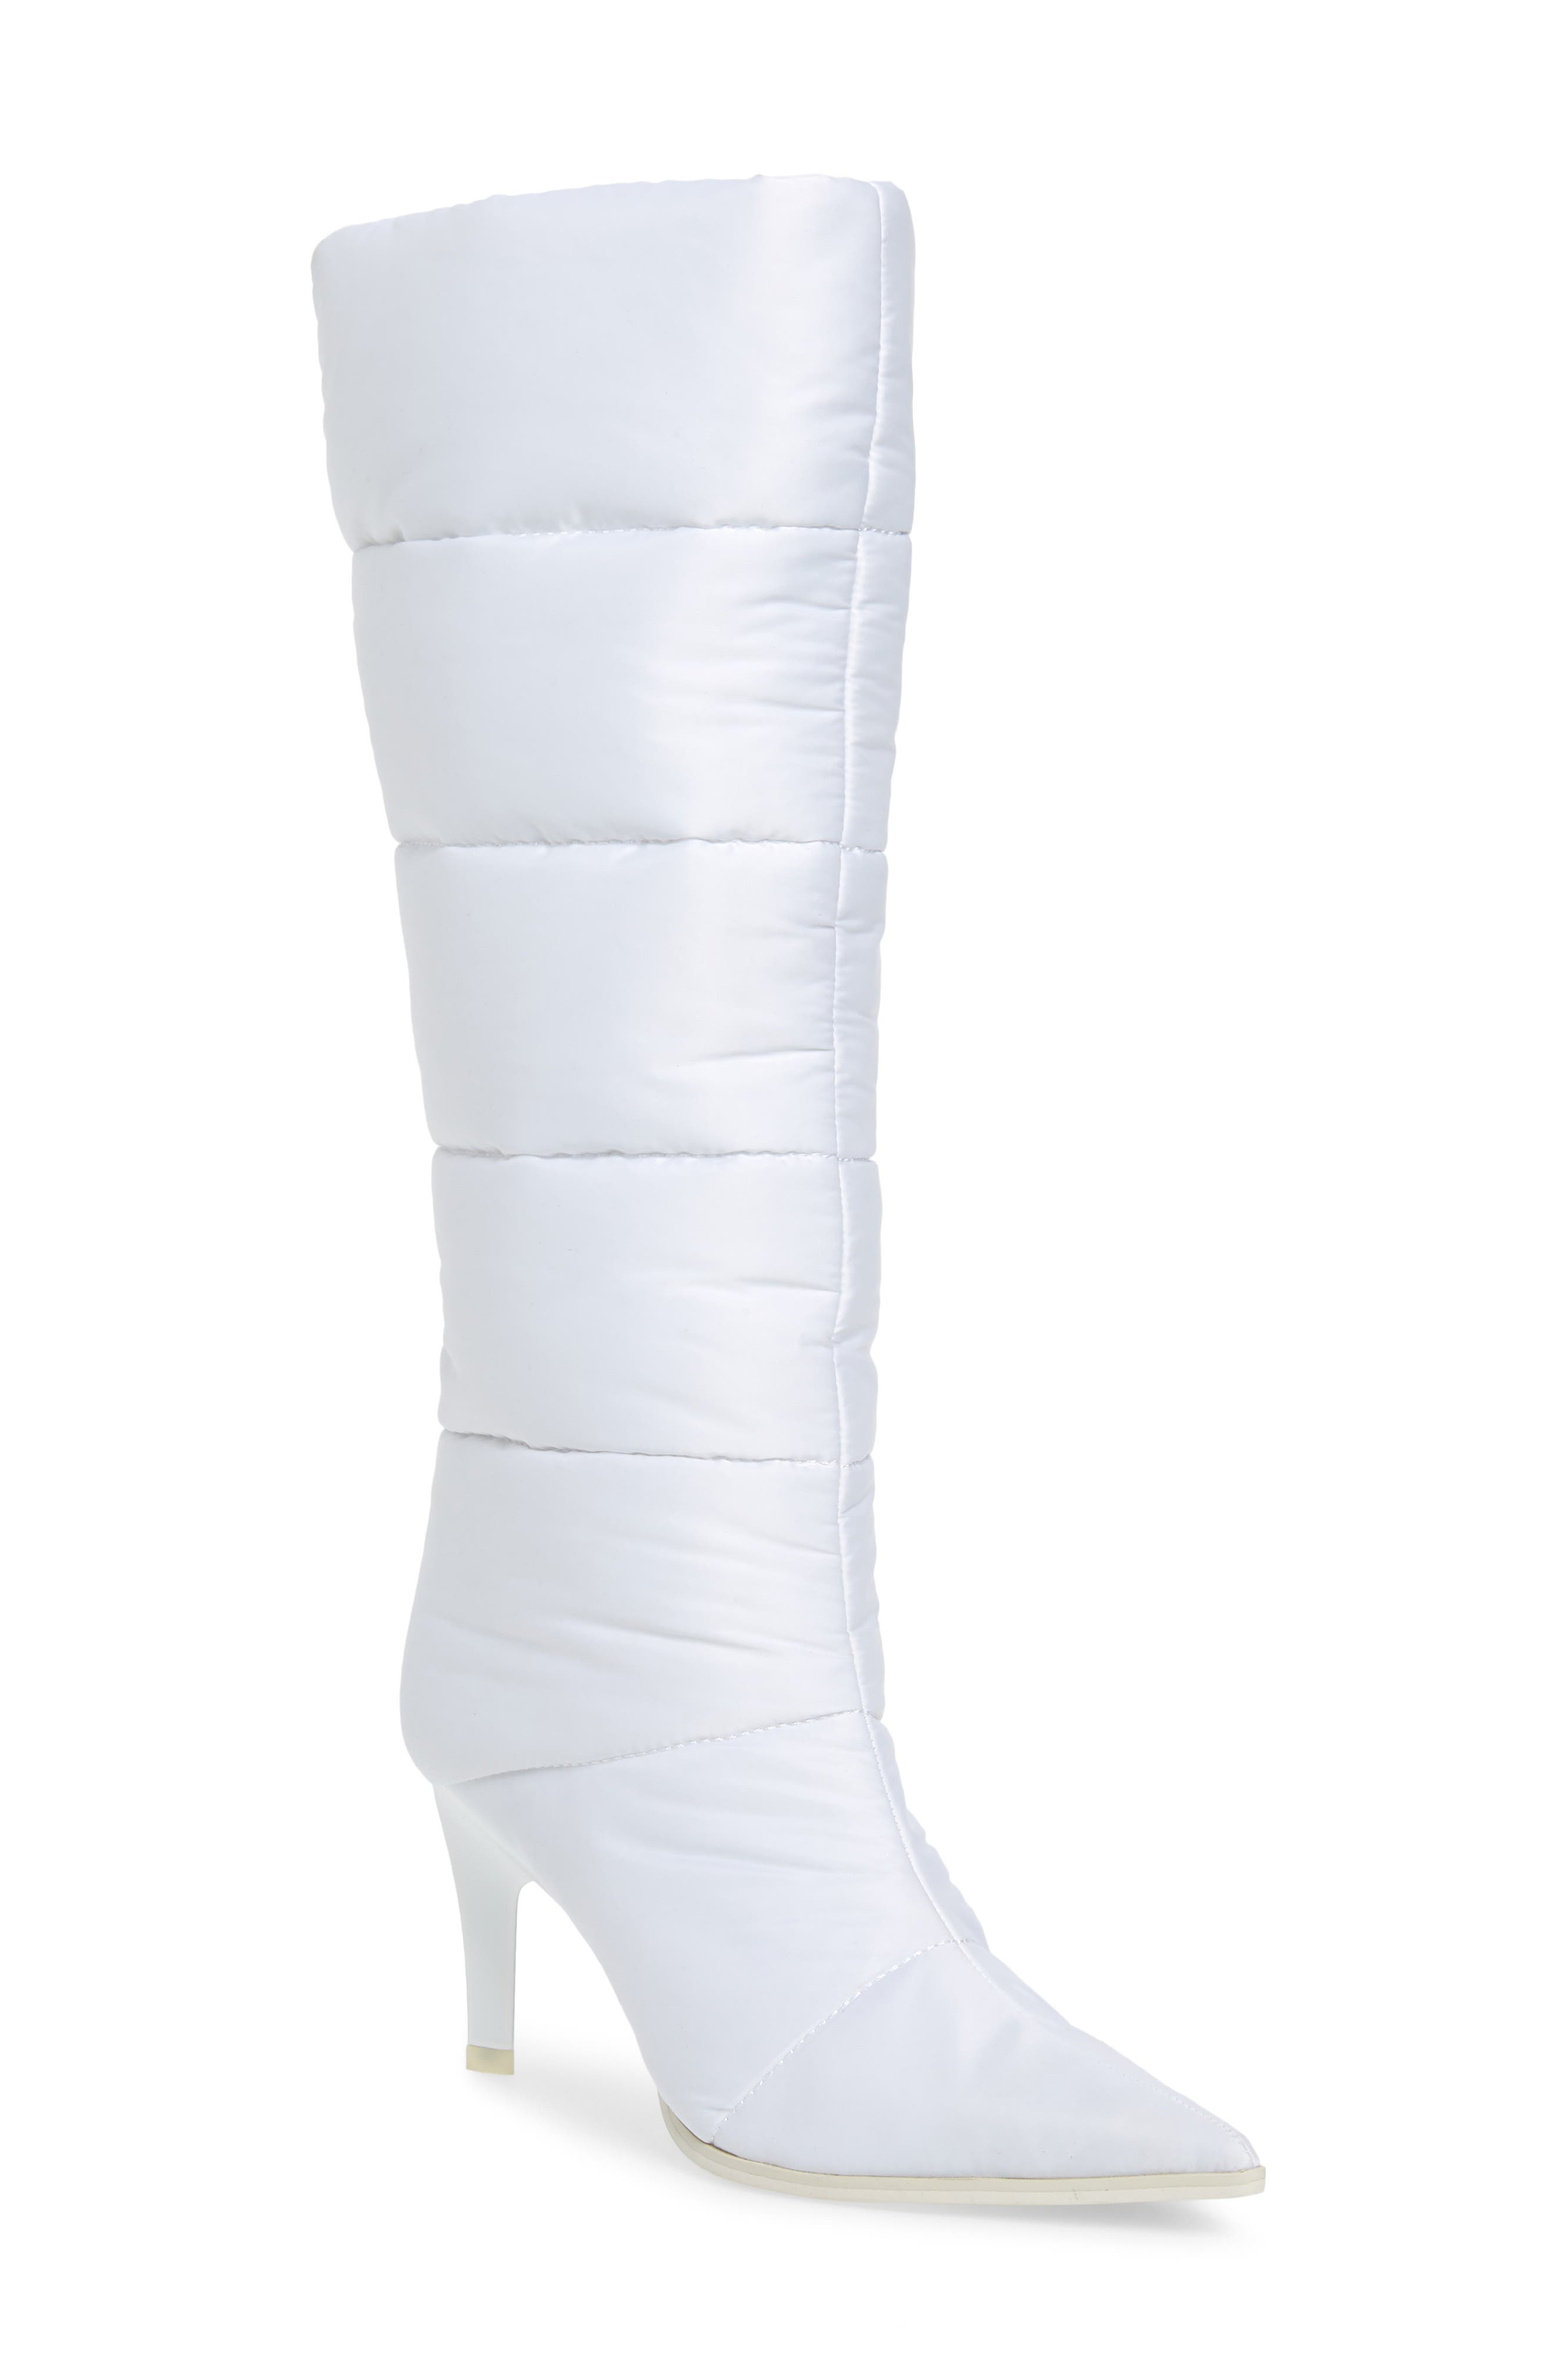 Apris Knee High Puffer Boot,                             Main thumbnail 1, color,                             WHITE FABRIC